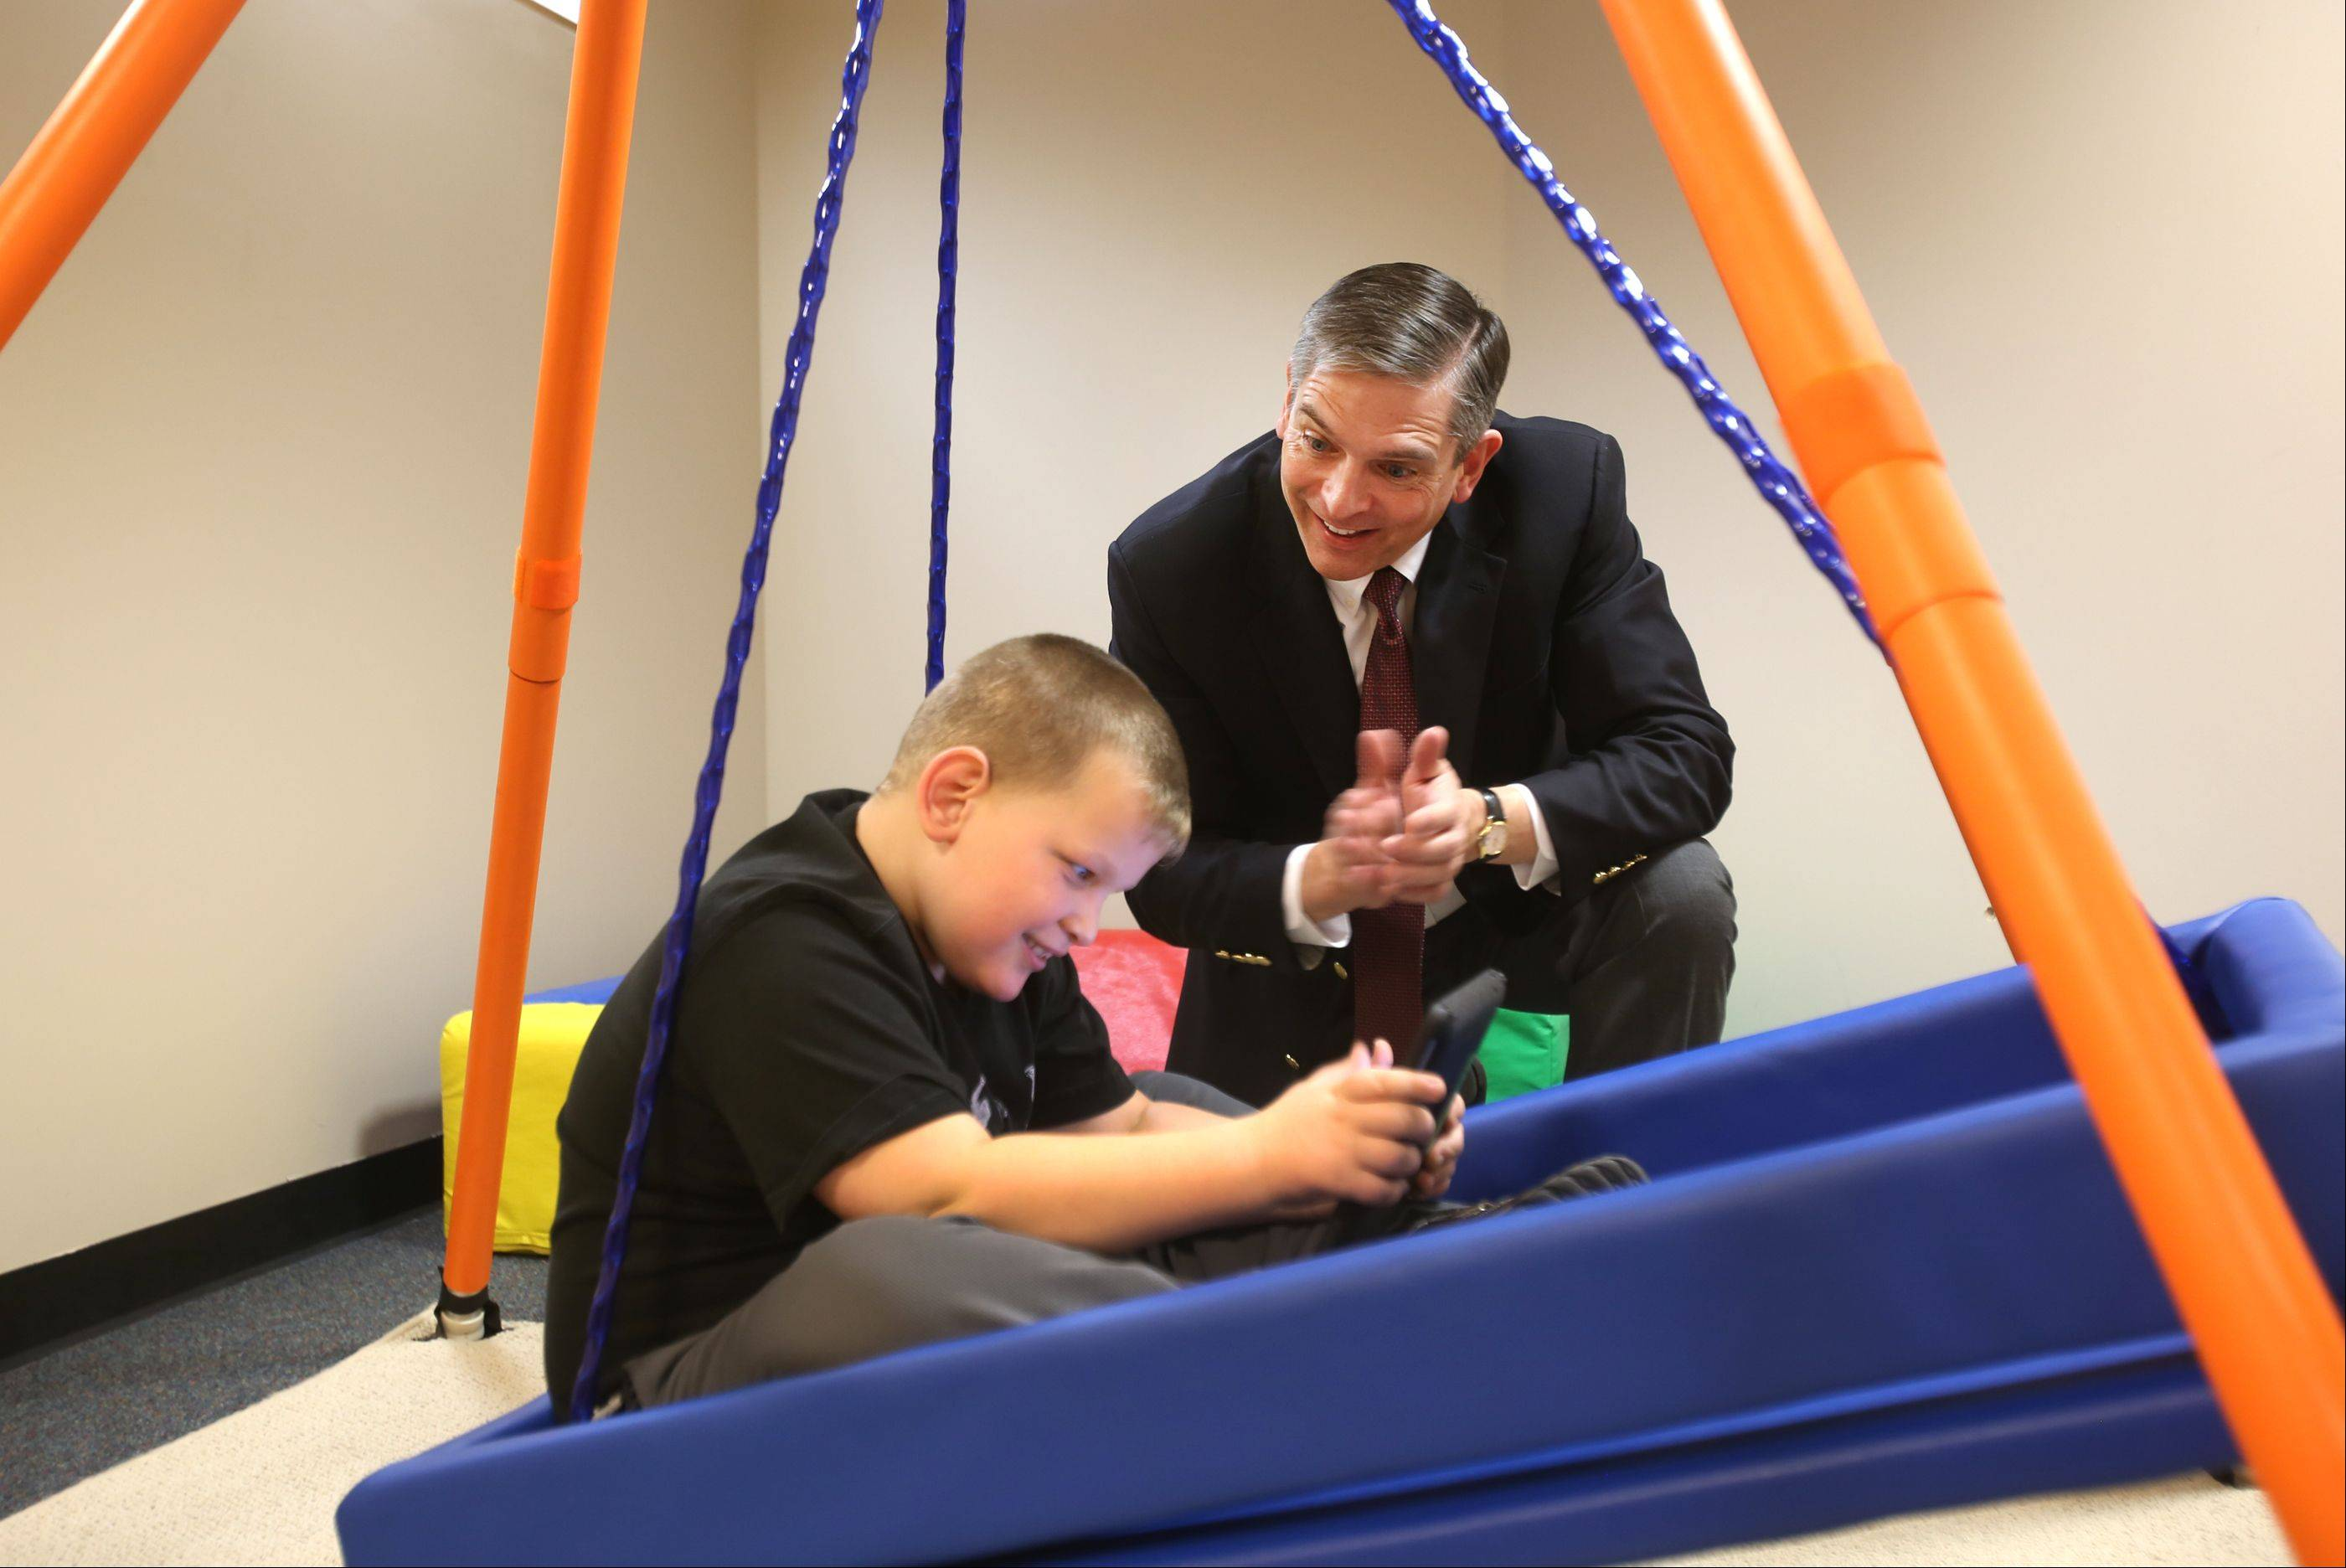 Gilbert Fonger, Marklund's president and CEO, observes Bartosz K. who uses an iPad in his platform therapy swing at the Marklund's Life Skills Academy in Bloomingdale.